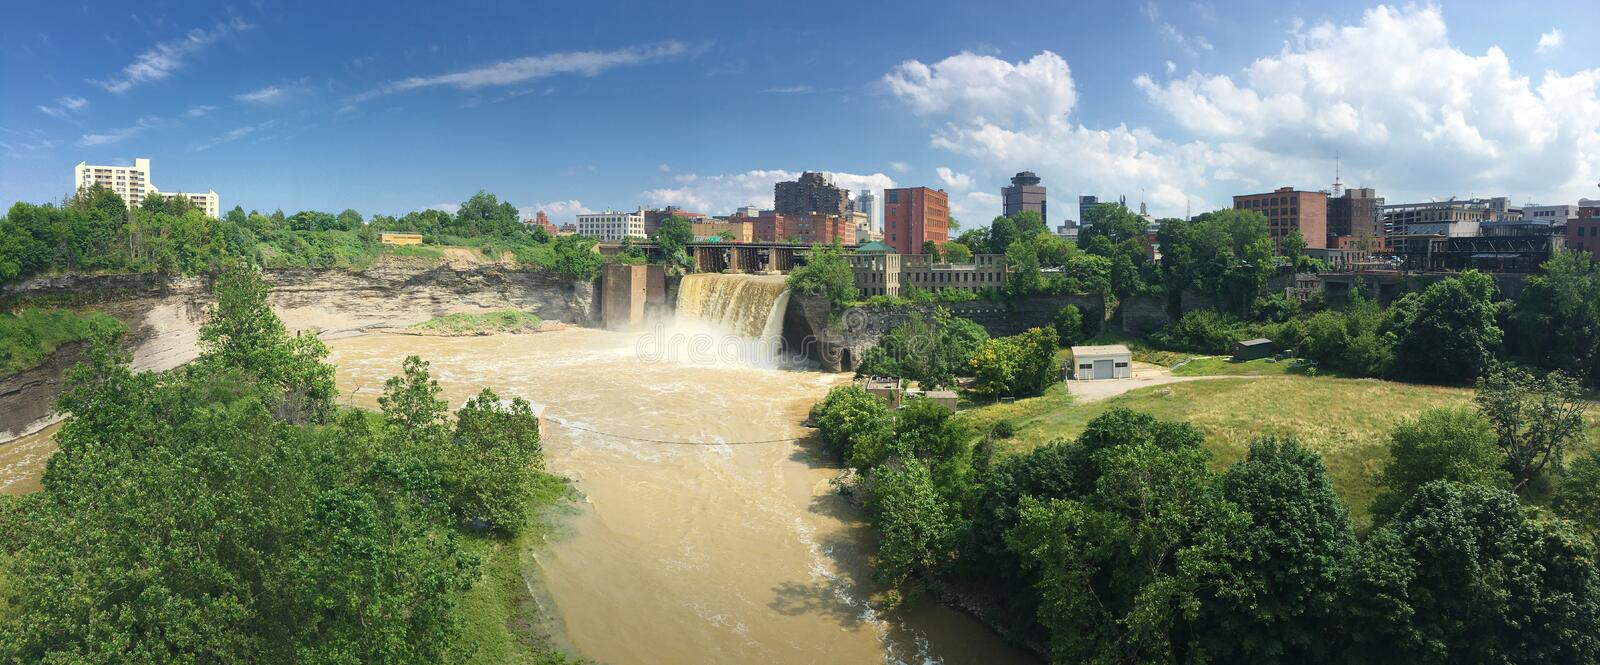 Panorama view of High Falls and the City of Rochester royalty free stock image